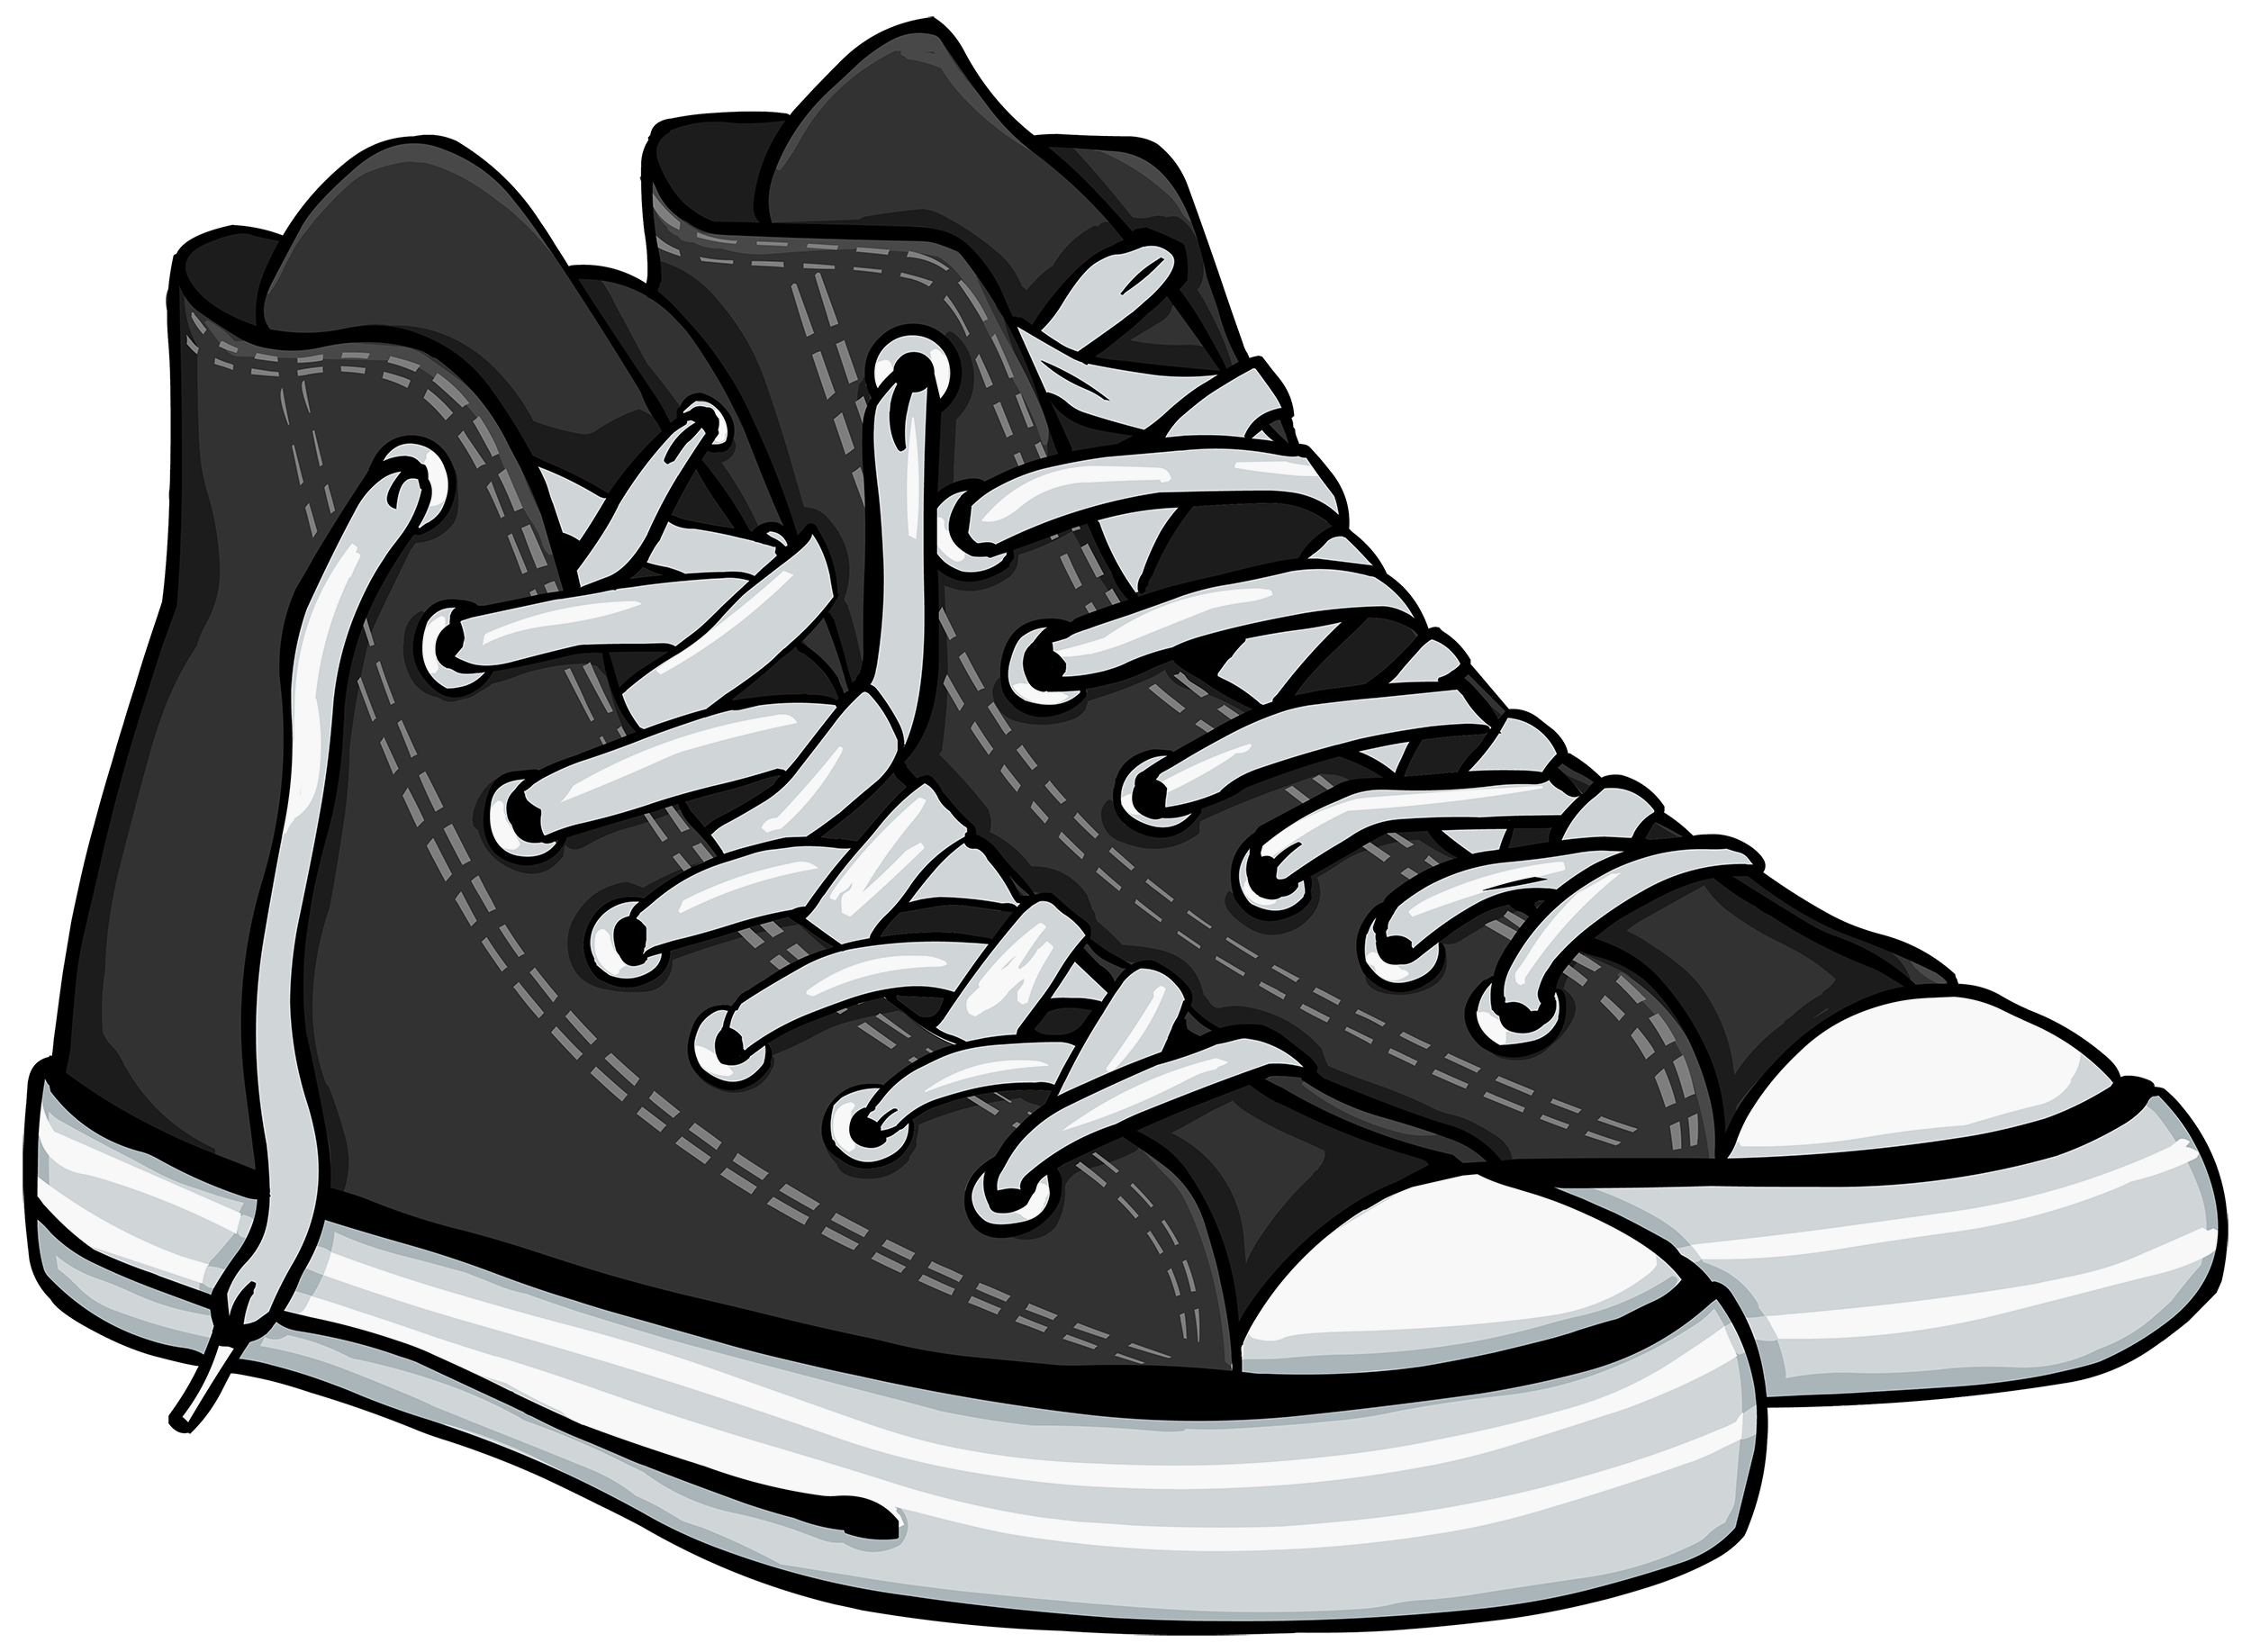 png transparent Tennis shoes clipart black and white. Collection images pinterest.